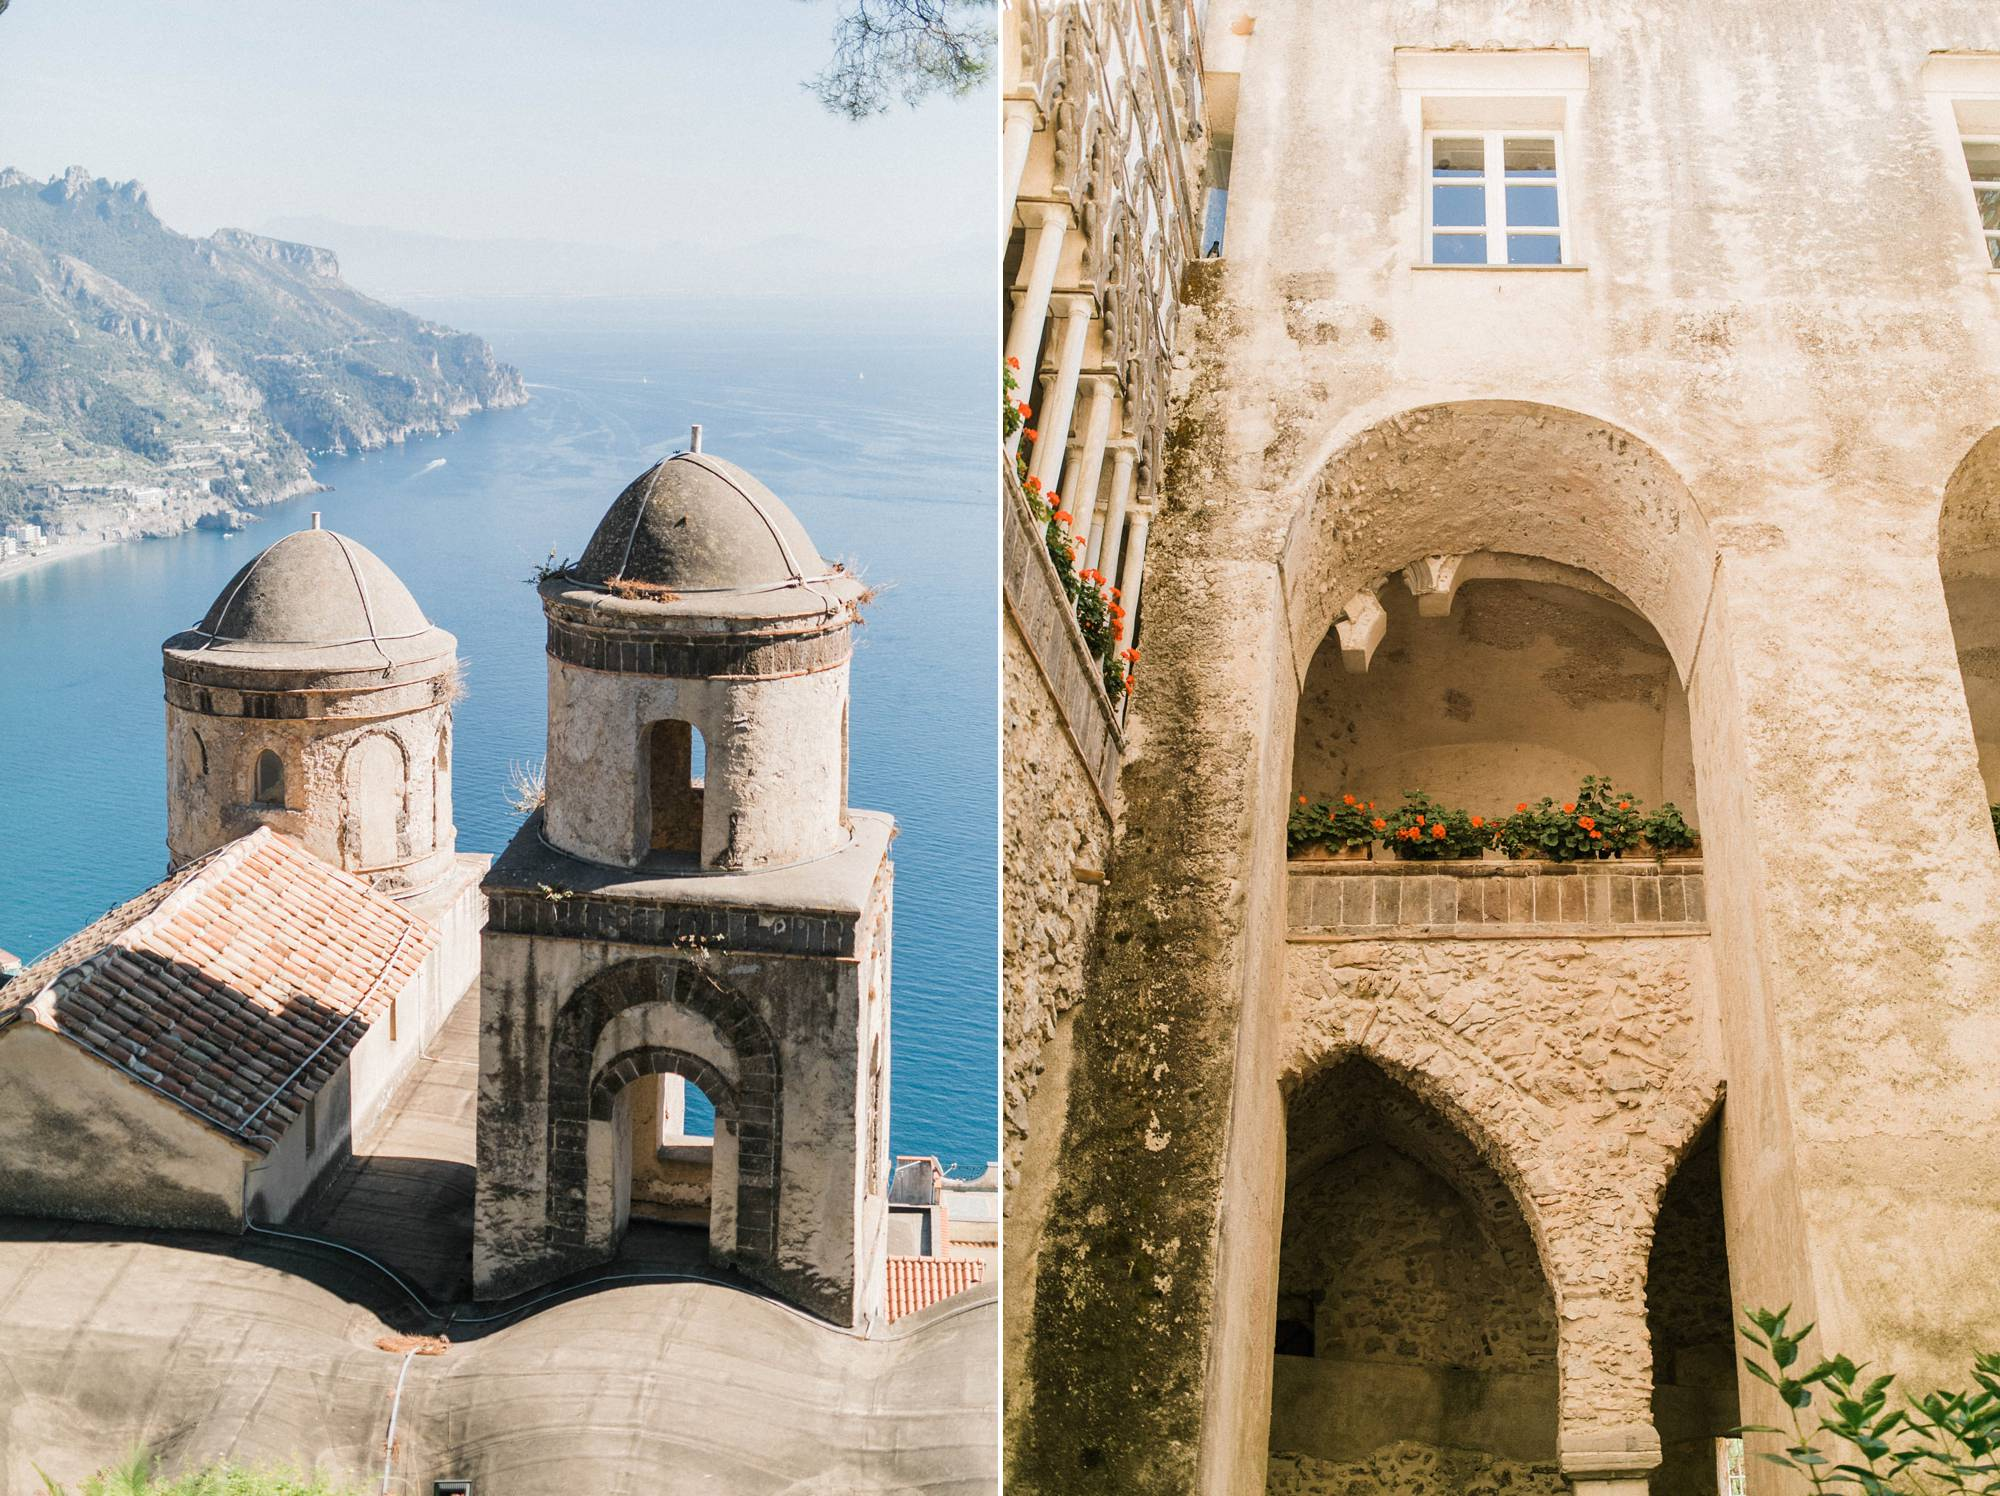 Italy_Amalfi_Positano_Ravello_Capri_Photos_Toronto_Wedding_Photographer_Photos-Rhythm_Photography